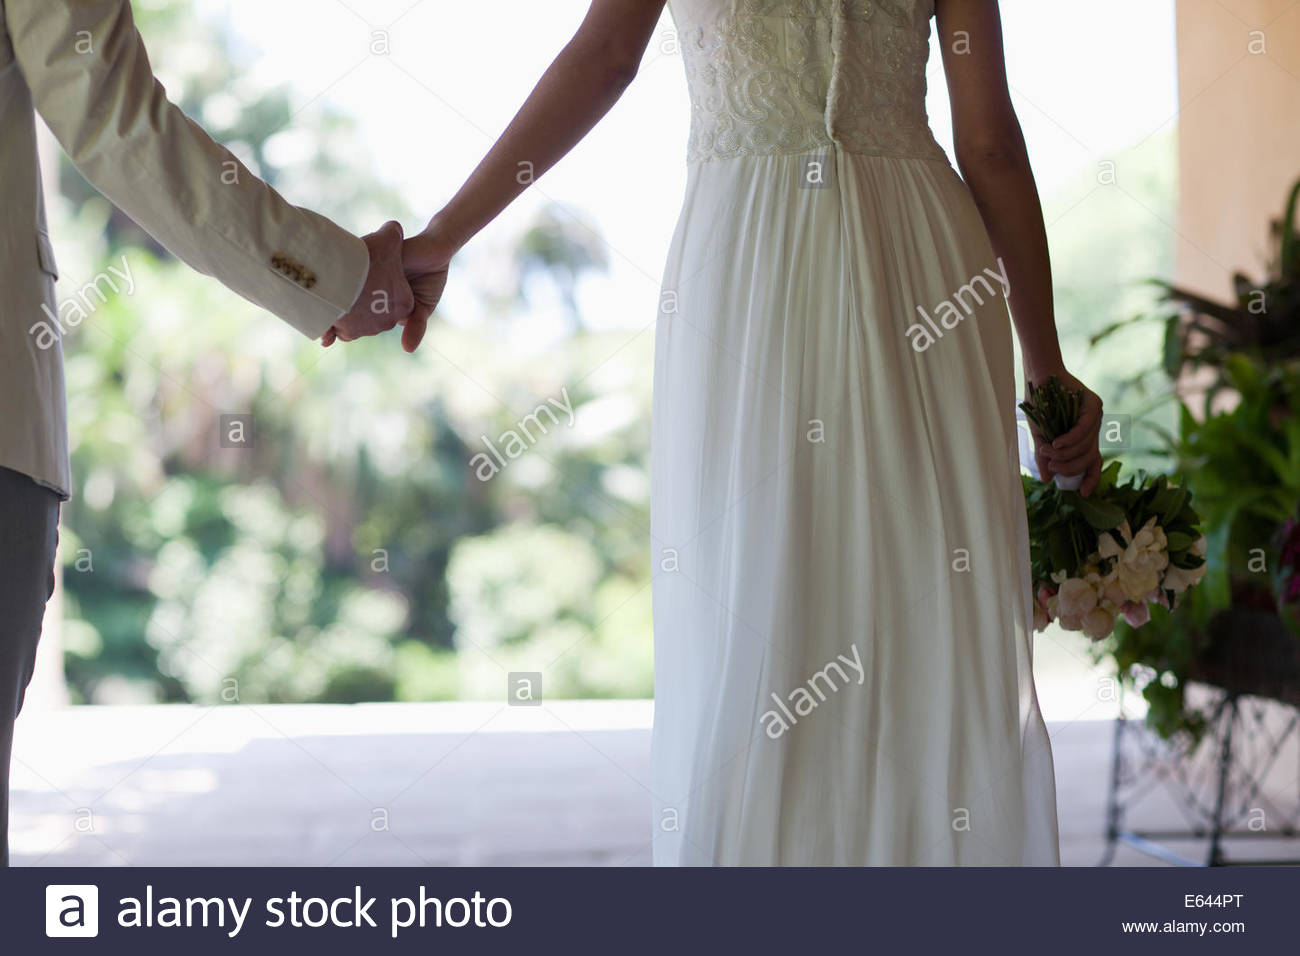 Bride and Groom holding hands Photo Stock